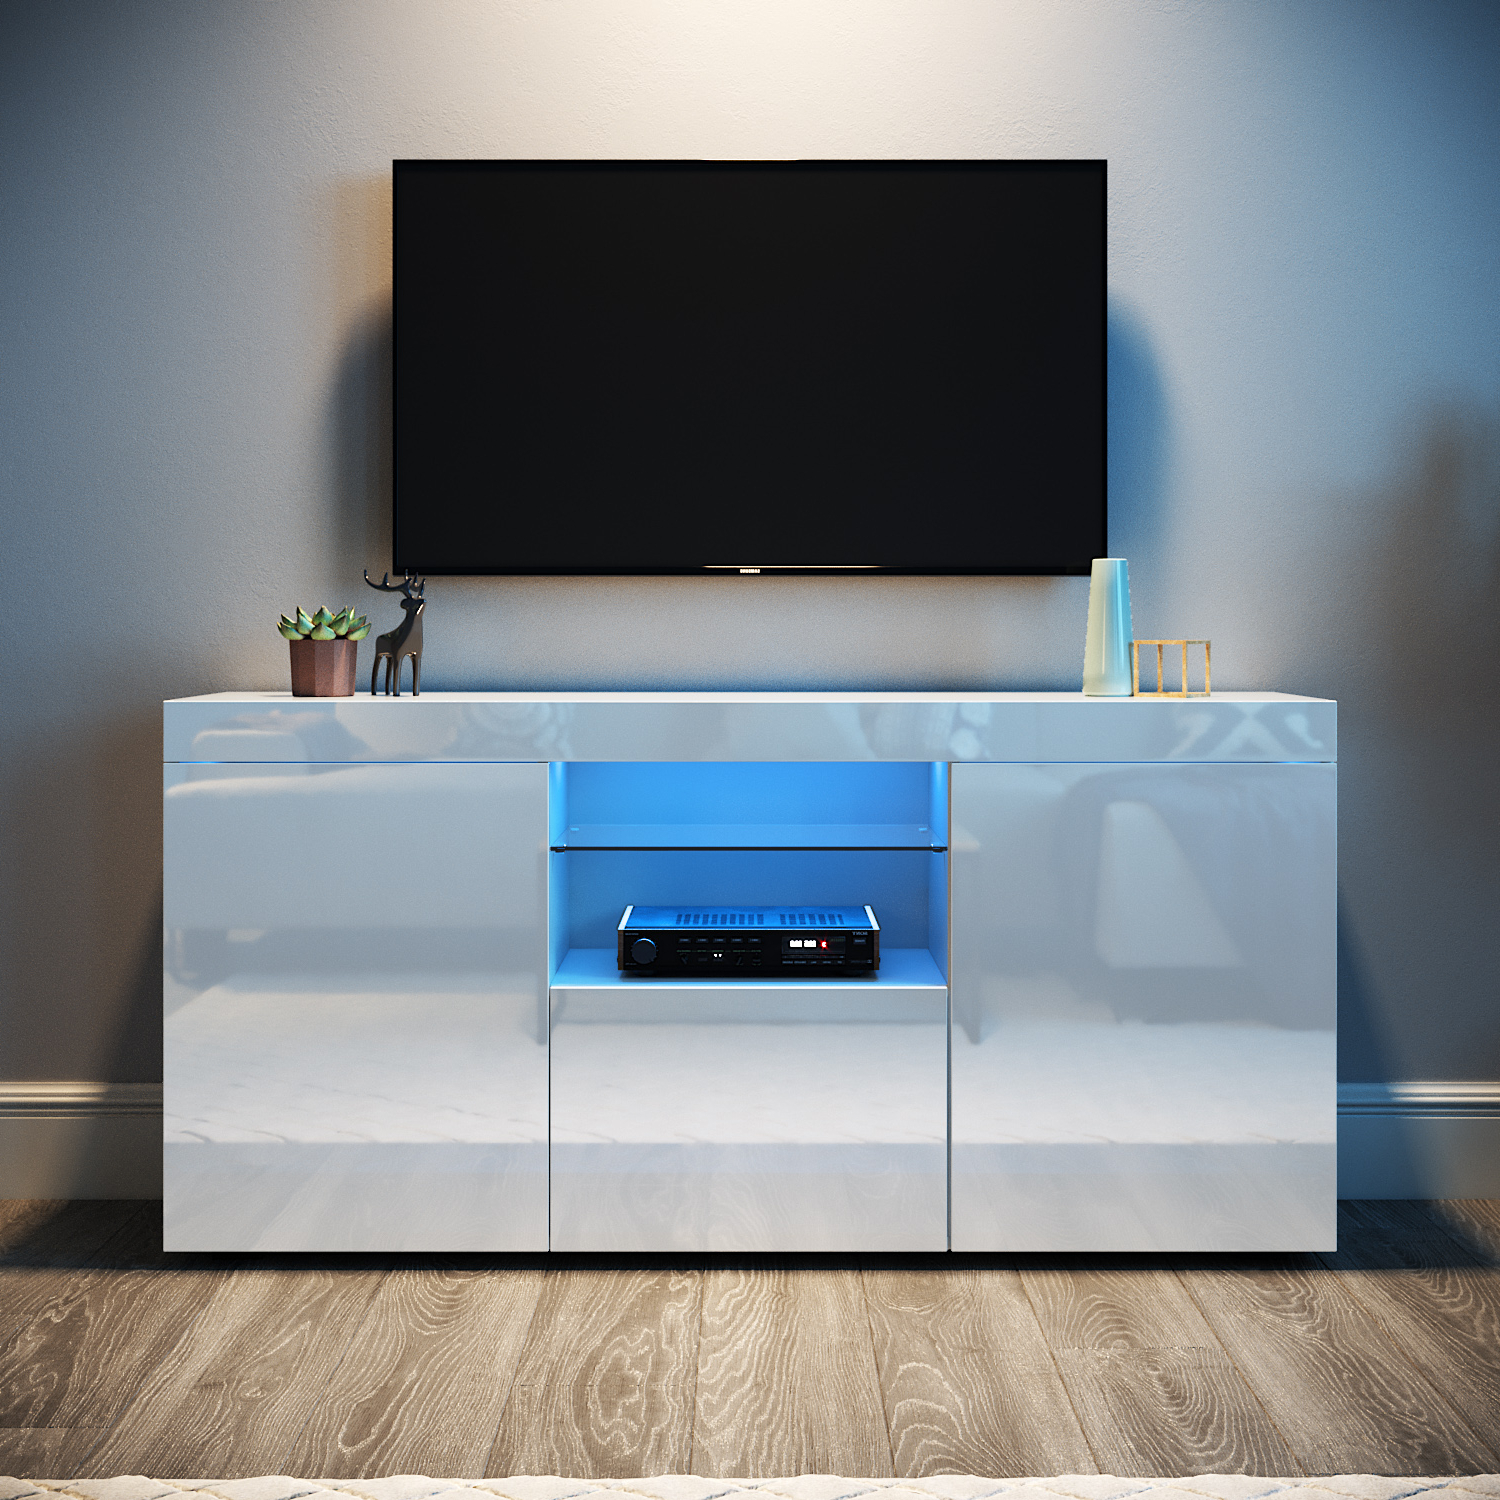 2017 Modern Entertainment Unit Tv Stand White Cabinet High Pertaining To Tv Stands Cabinet Media Console Shelves 2 Drawers With Led Light (View 1 of 10)